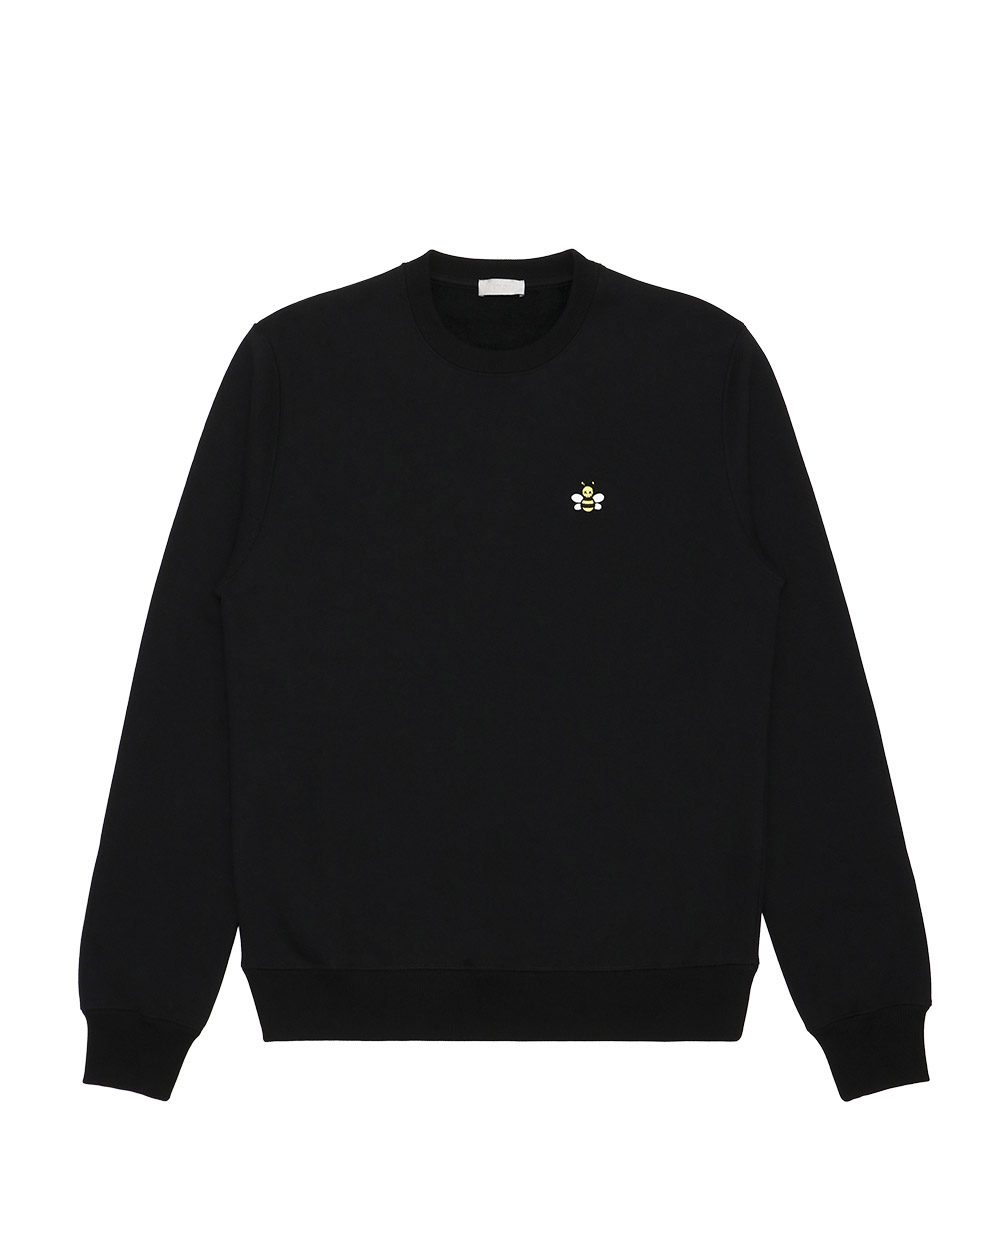 Bee Embroide Long Sleeves Sweater